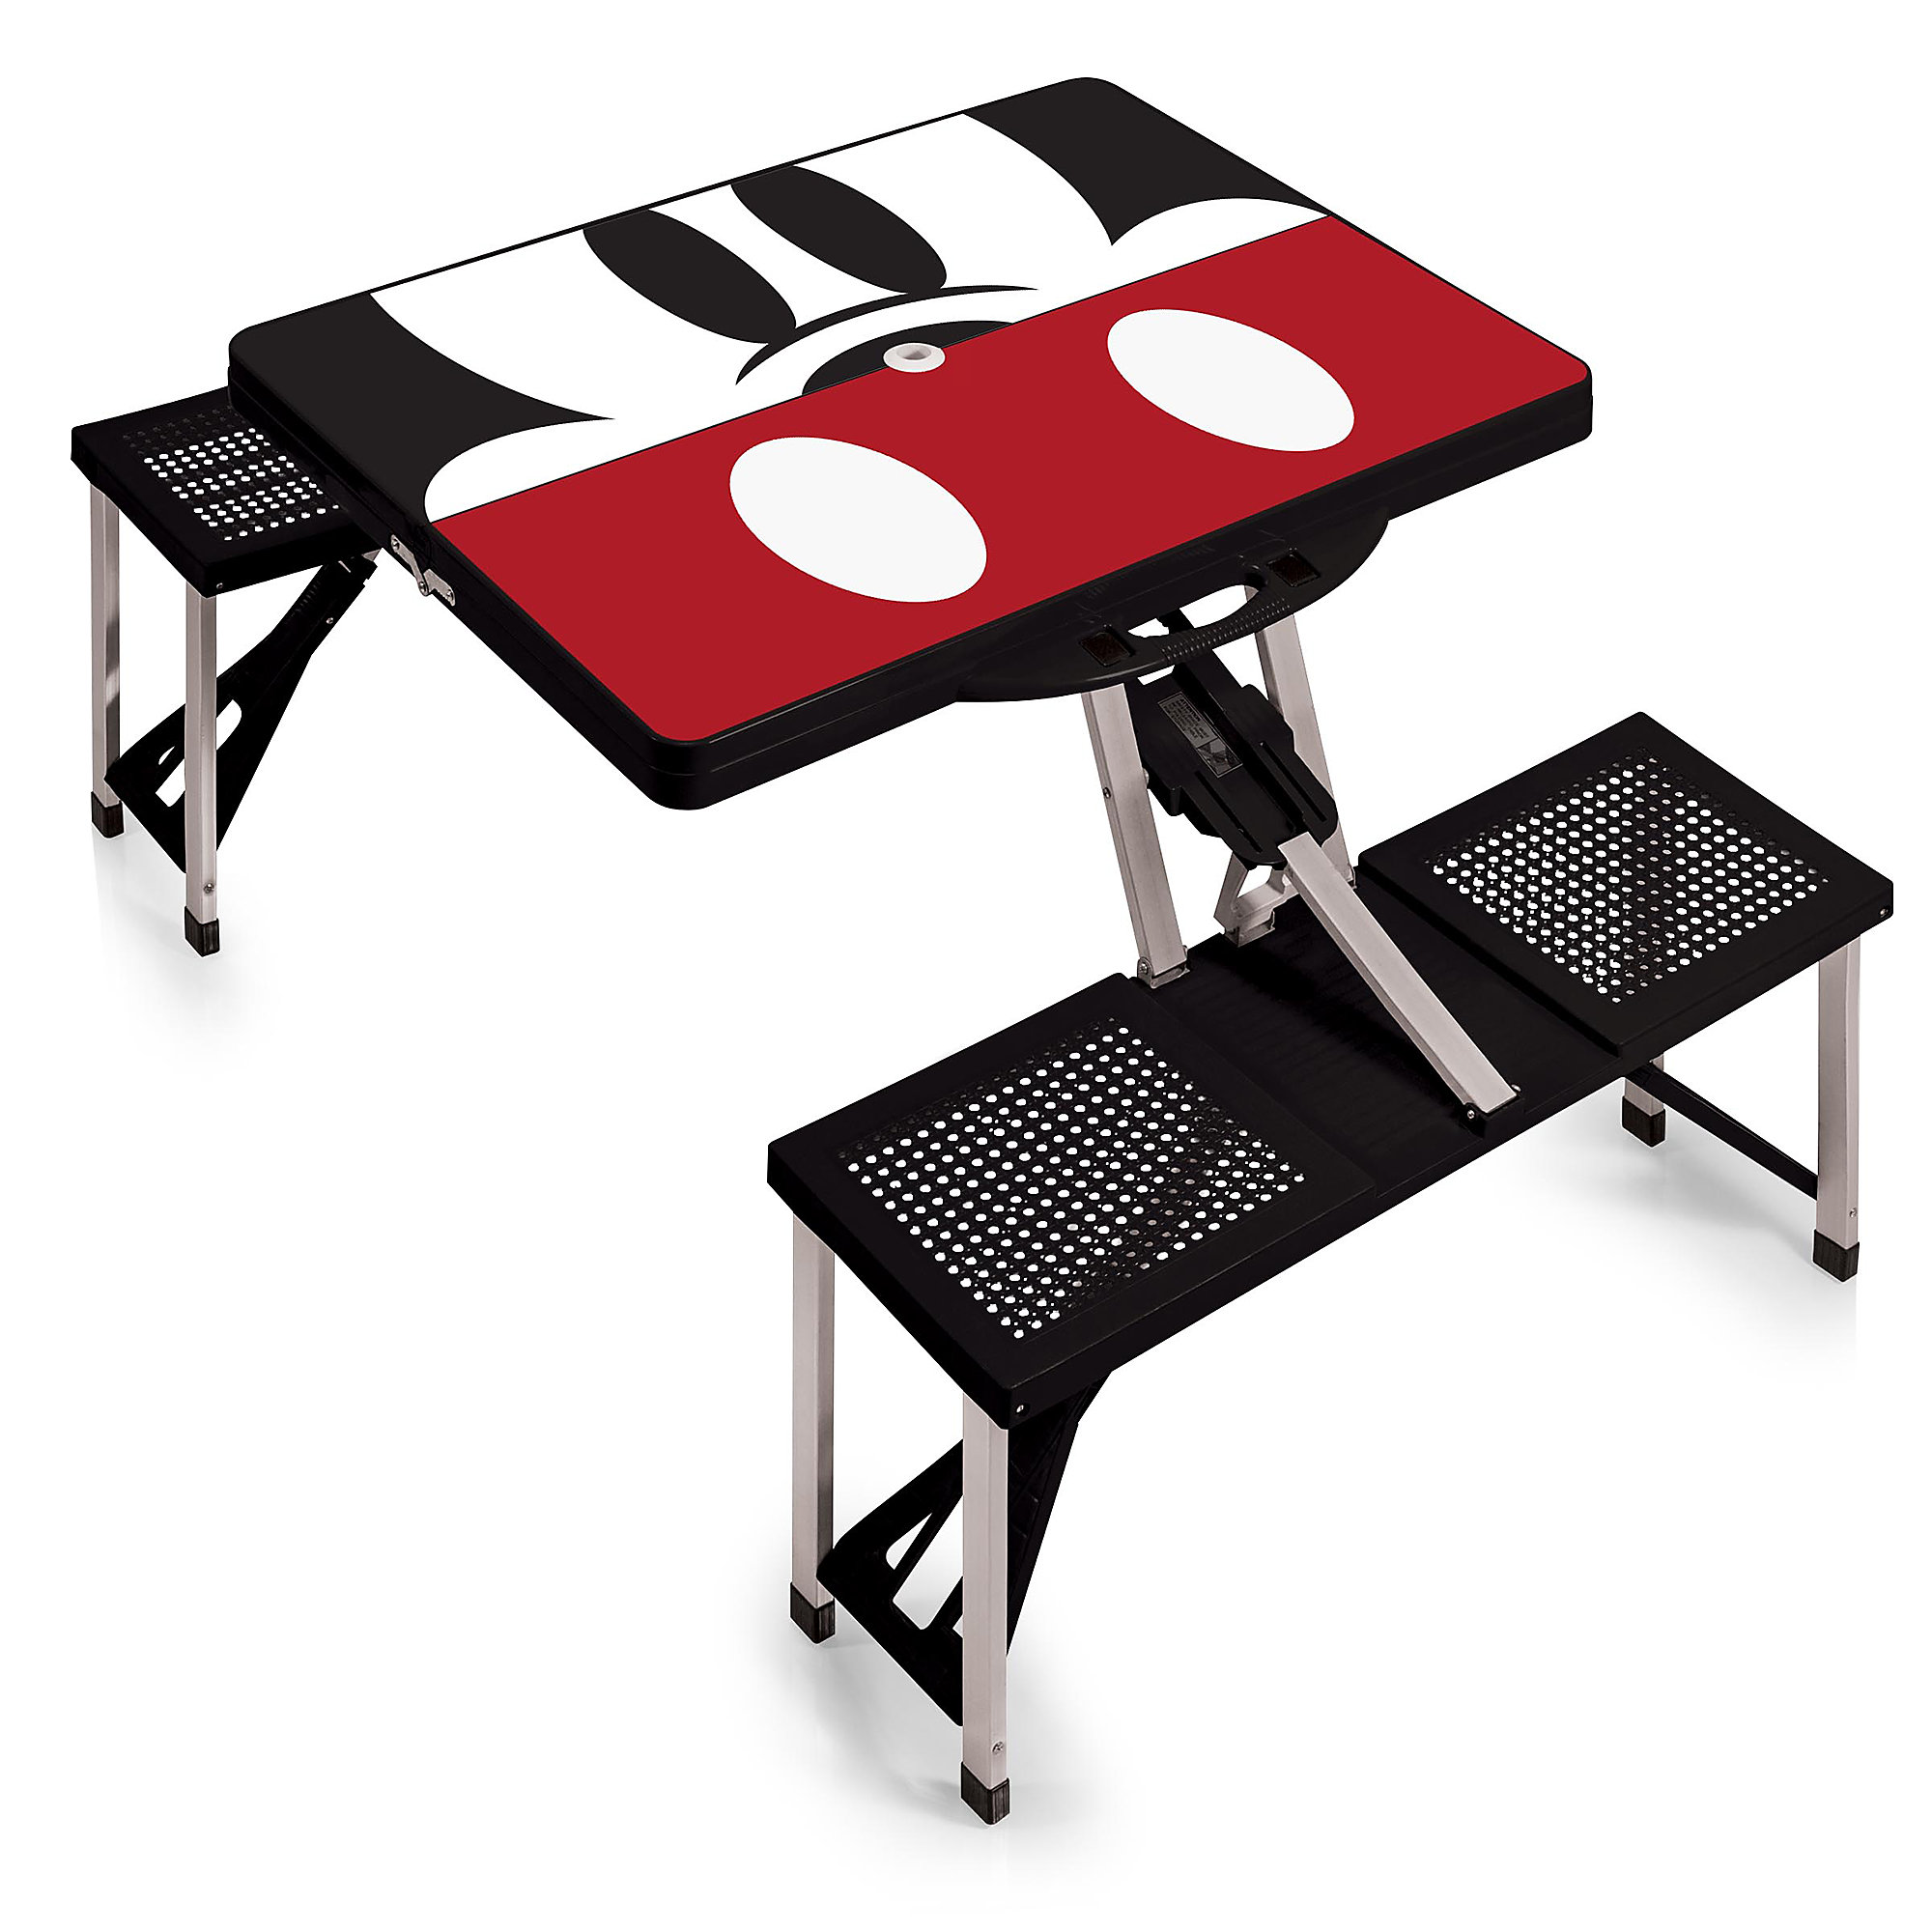 Mickey Mouse Chairs For Toddlers Mickey Mouse Picnic Table With Seats